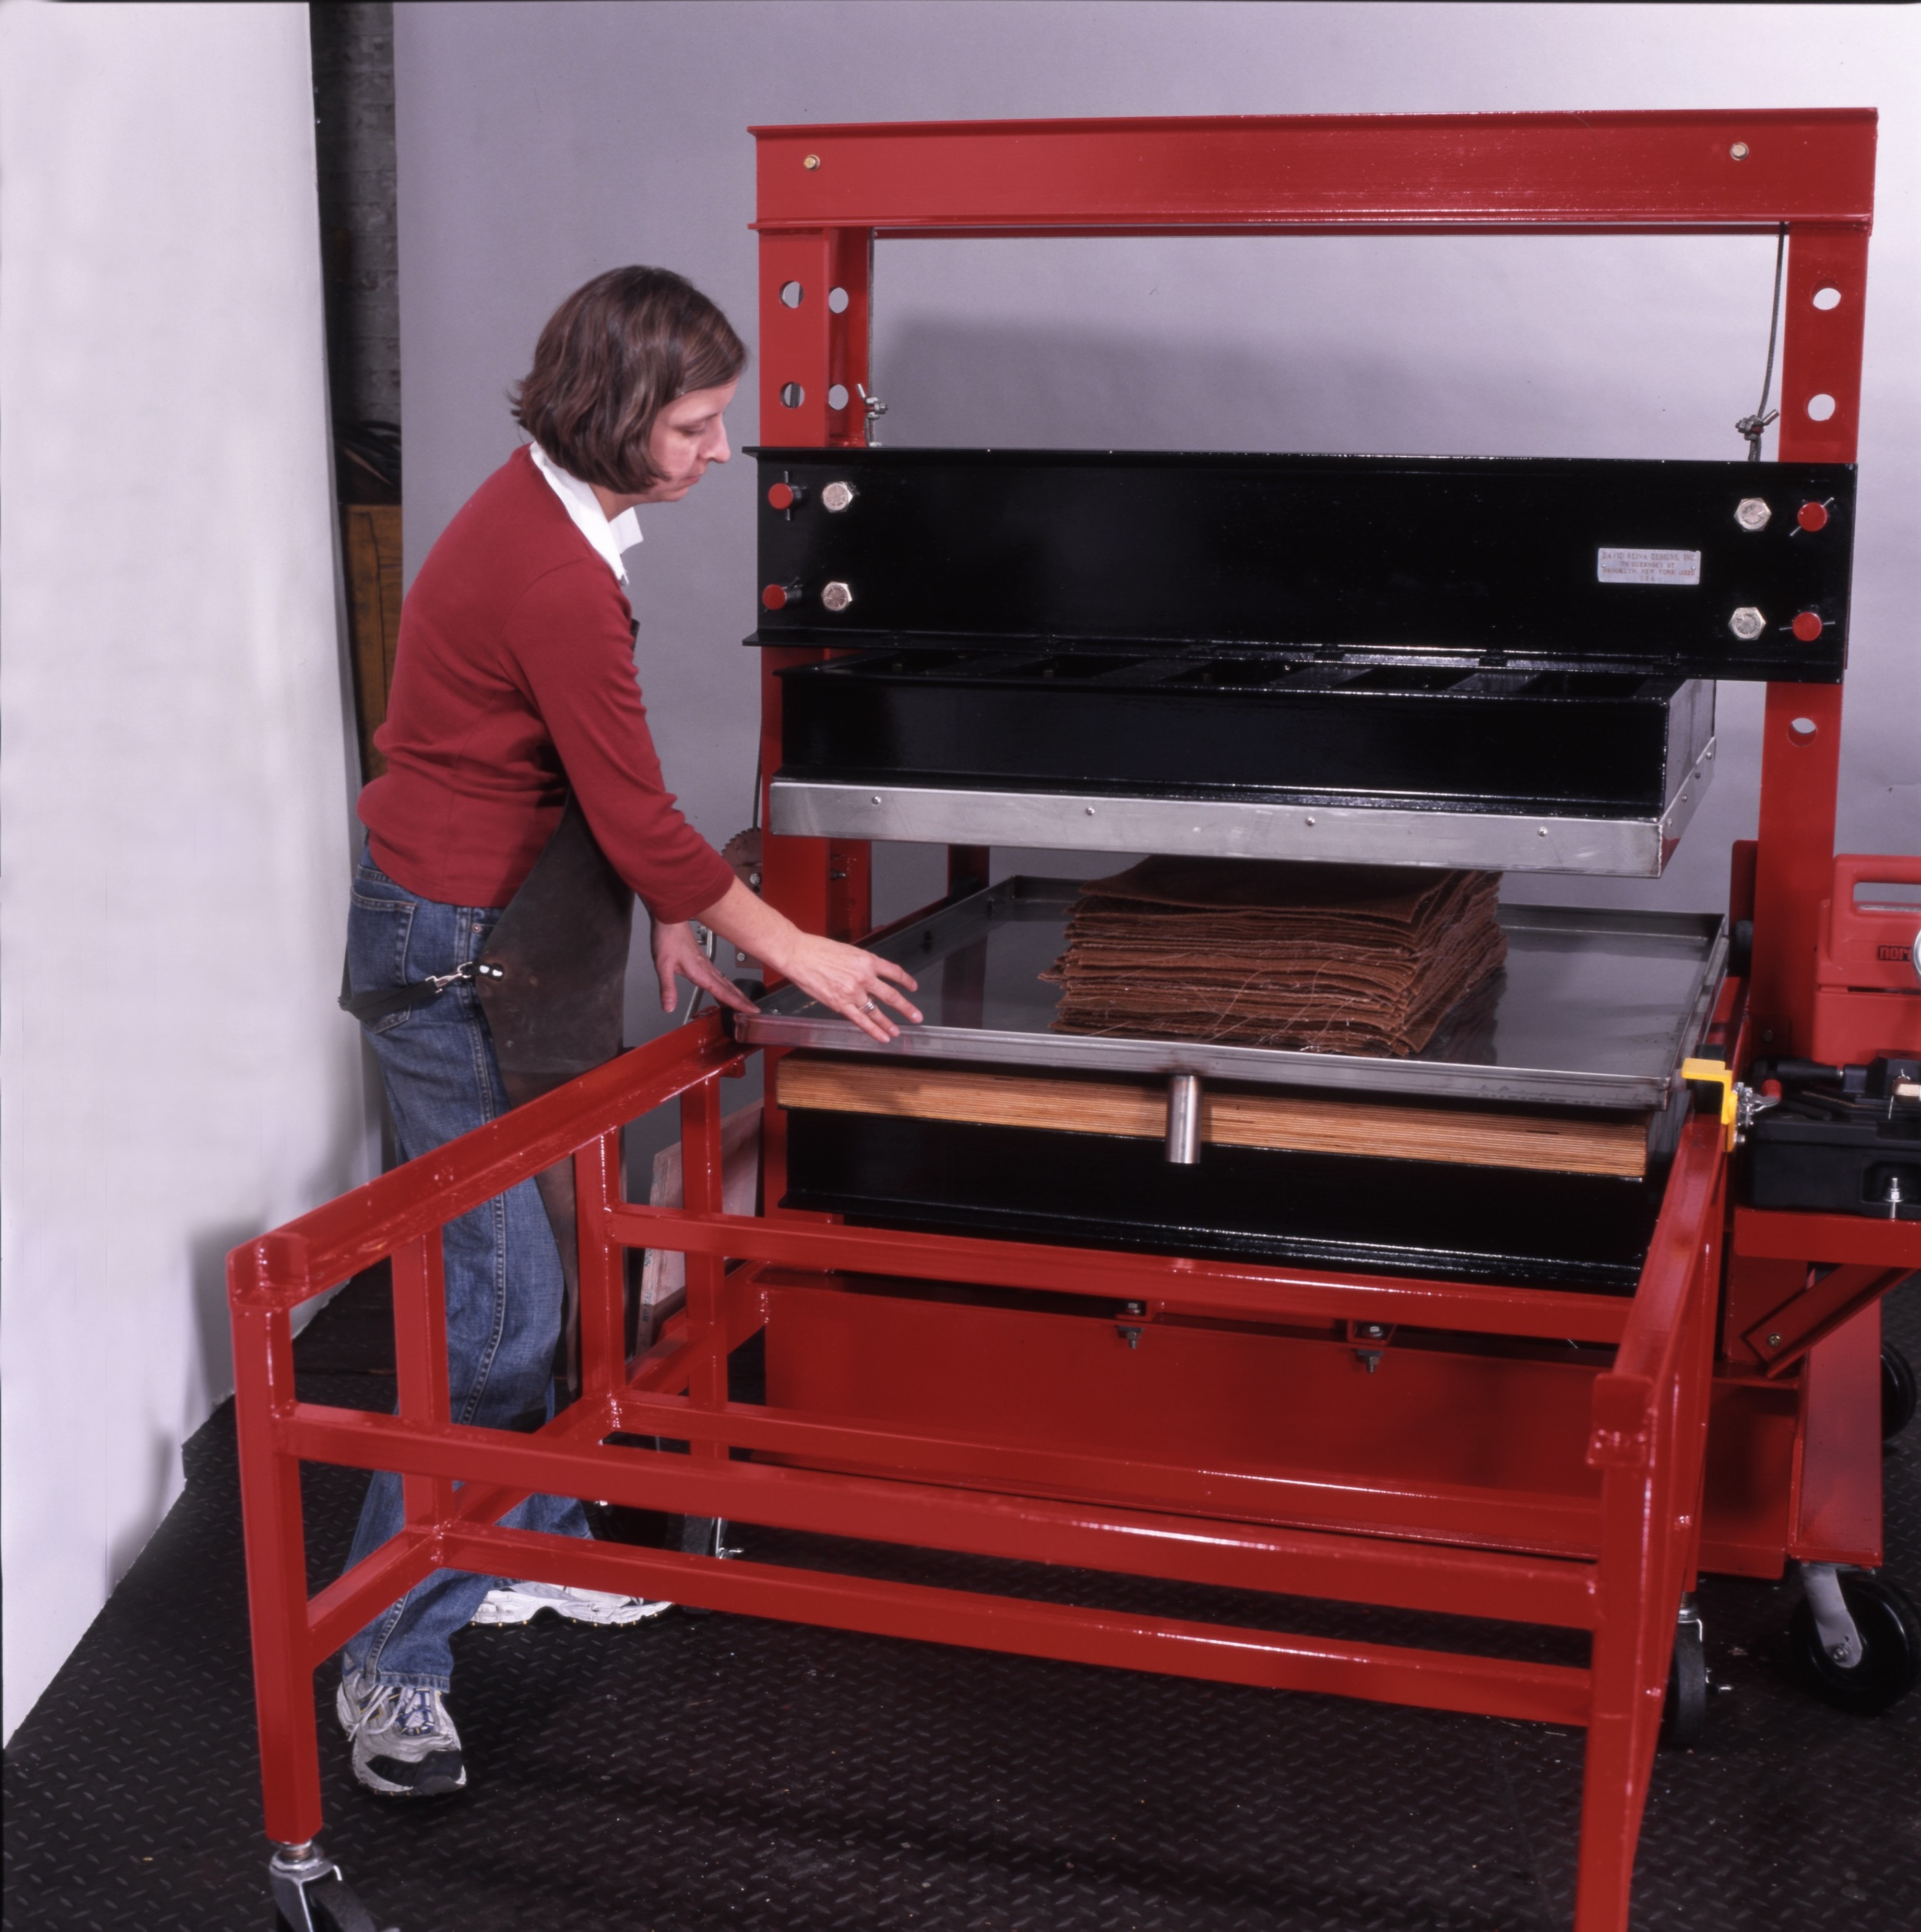 Pushing the stainless steel couching tray into the press